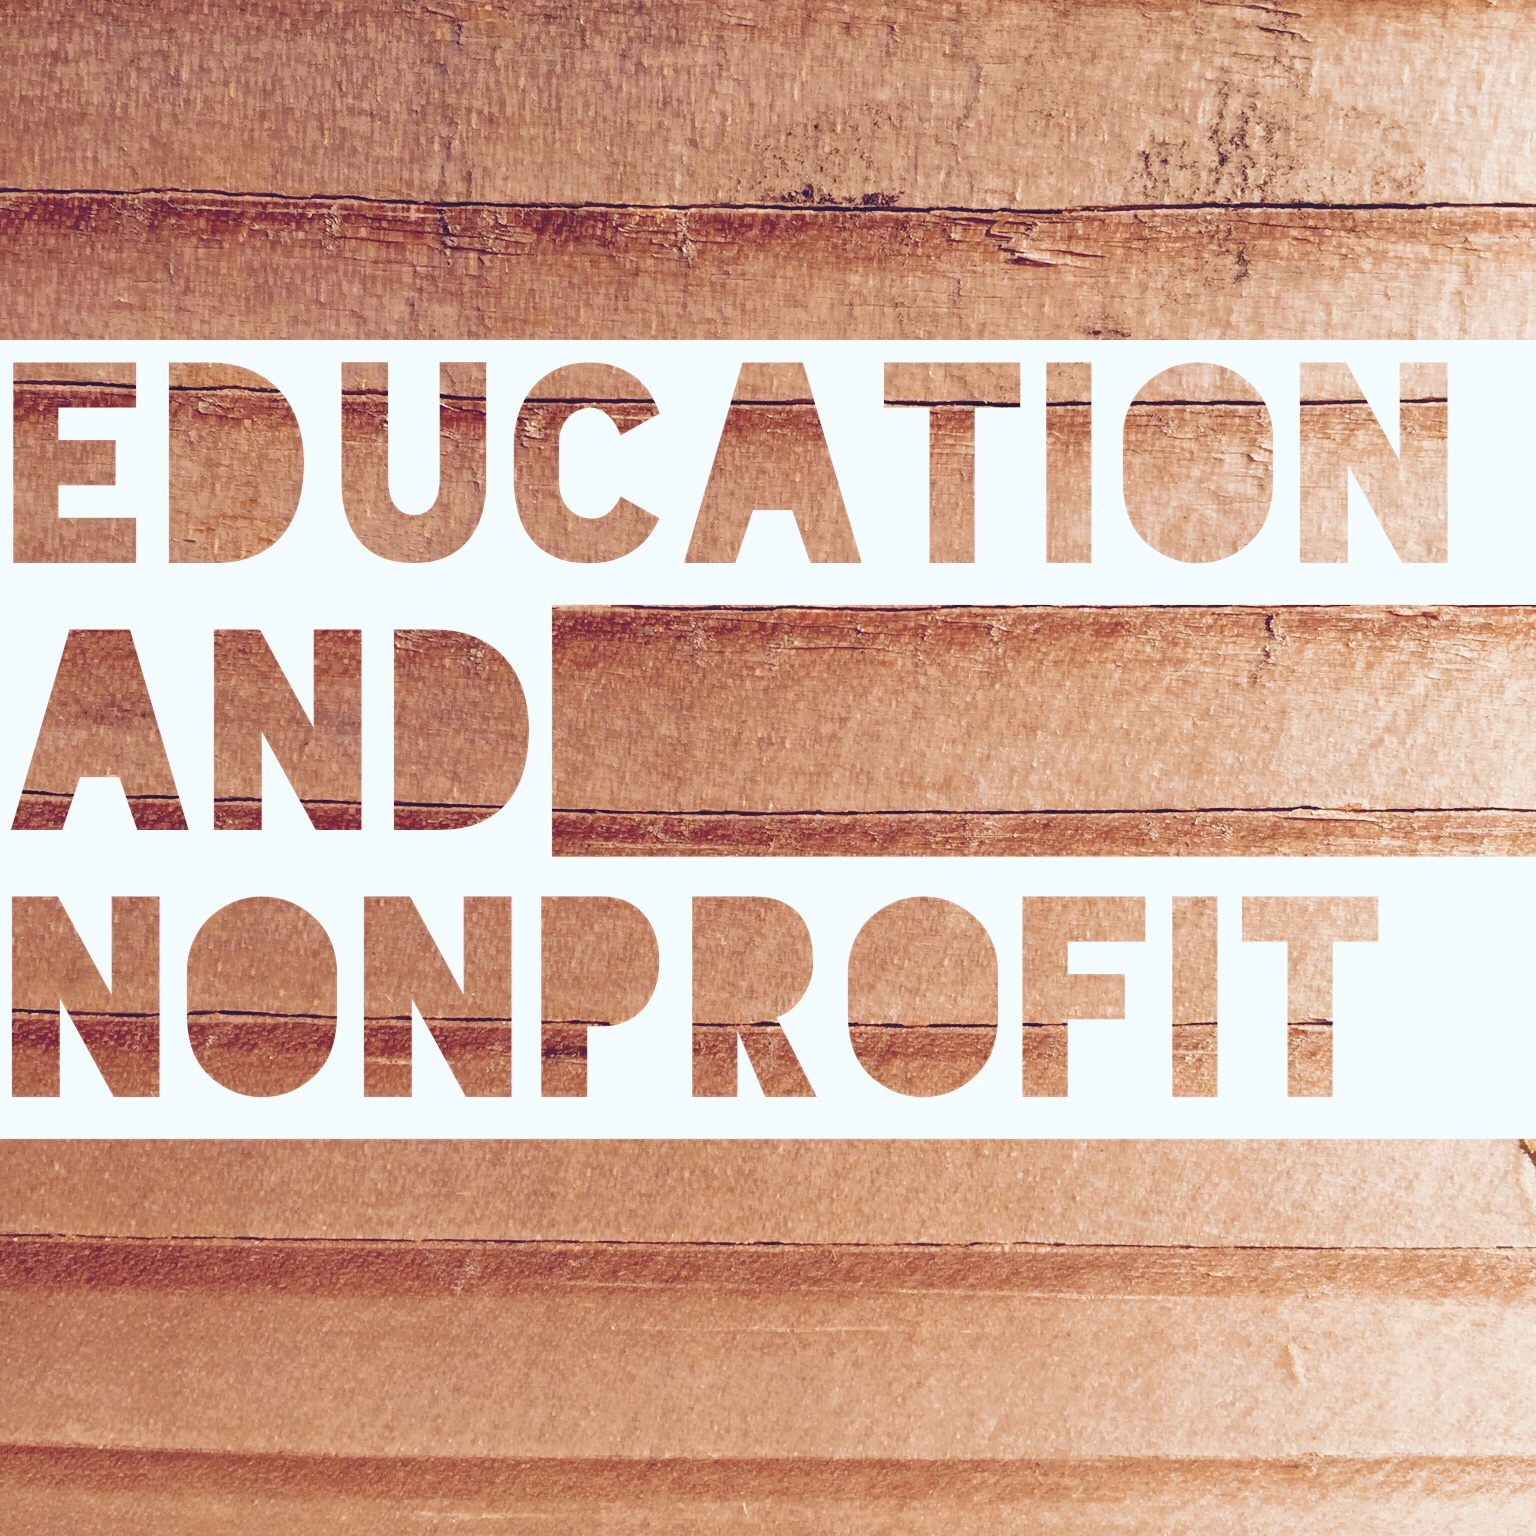 kyle recently completed projects for Deerfield Academy and iMentor, part of the nonprofit social innovation organization New Profit.  see more...